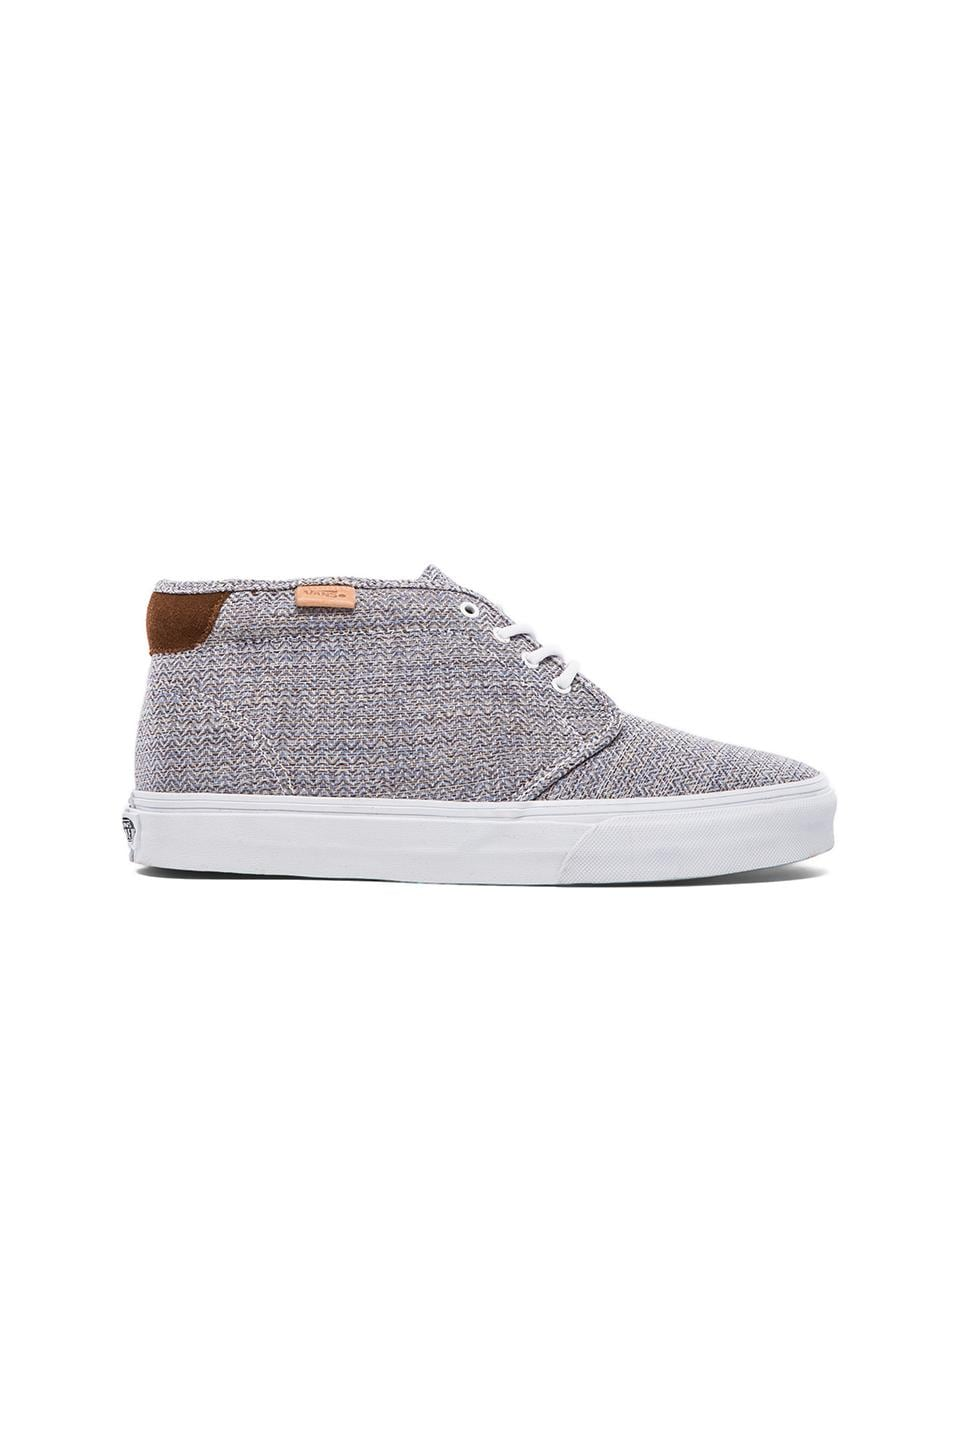 Vans California Chukka Boot 69 Primer in Sepia